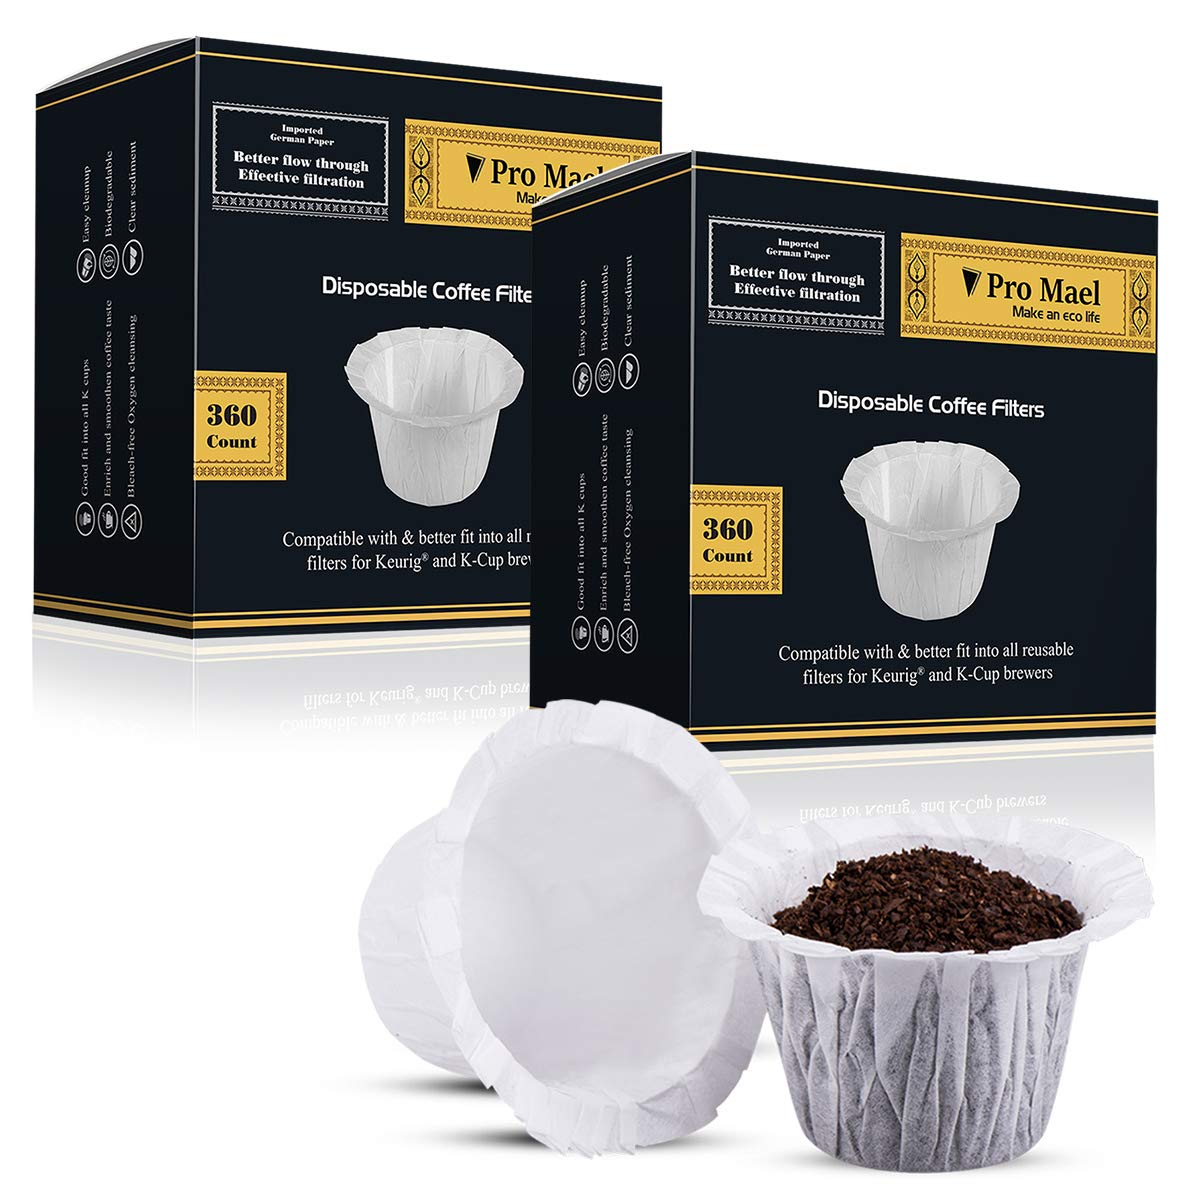 Disposable Coffee Filters 2 Pack 720 Counts Coffee Filter Paper for Keurig Brewers Single Serve 1.0 and 2.0 Use with All Brands Reusable K Cup Filter